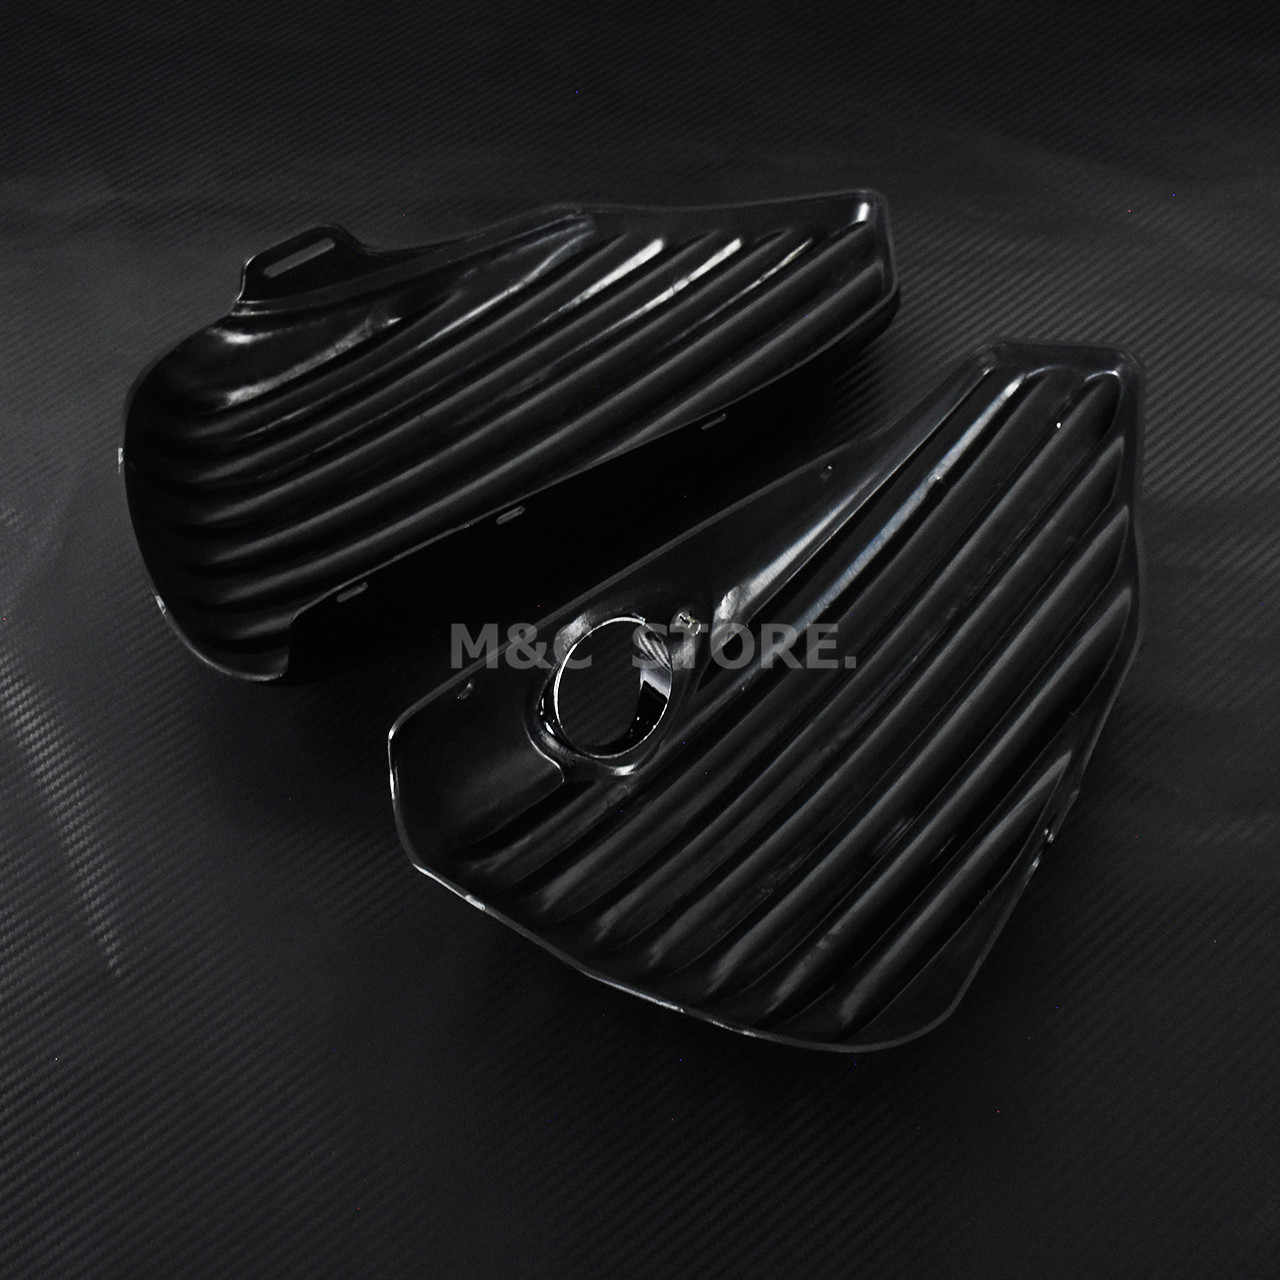 Motorfiets Zwart Links Rechts Kuip Batterij Cover Gas Tank Guard Kuip Streep Voor harley Sportster 883 1200 XL 48 72 Iron Nightster Custom Low Roadster 2004-2013